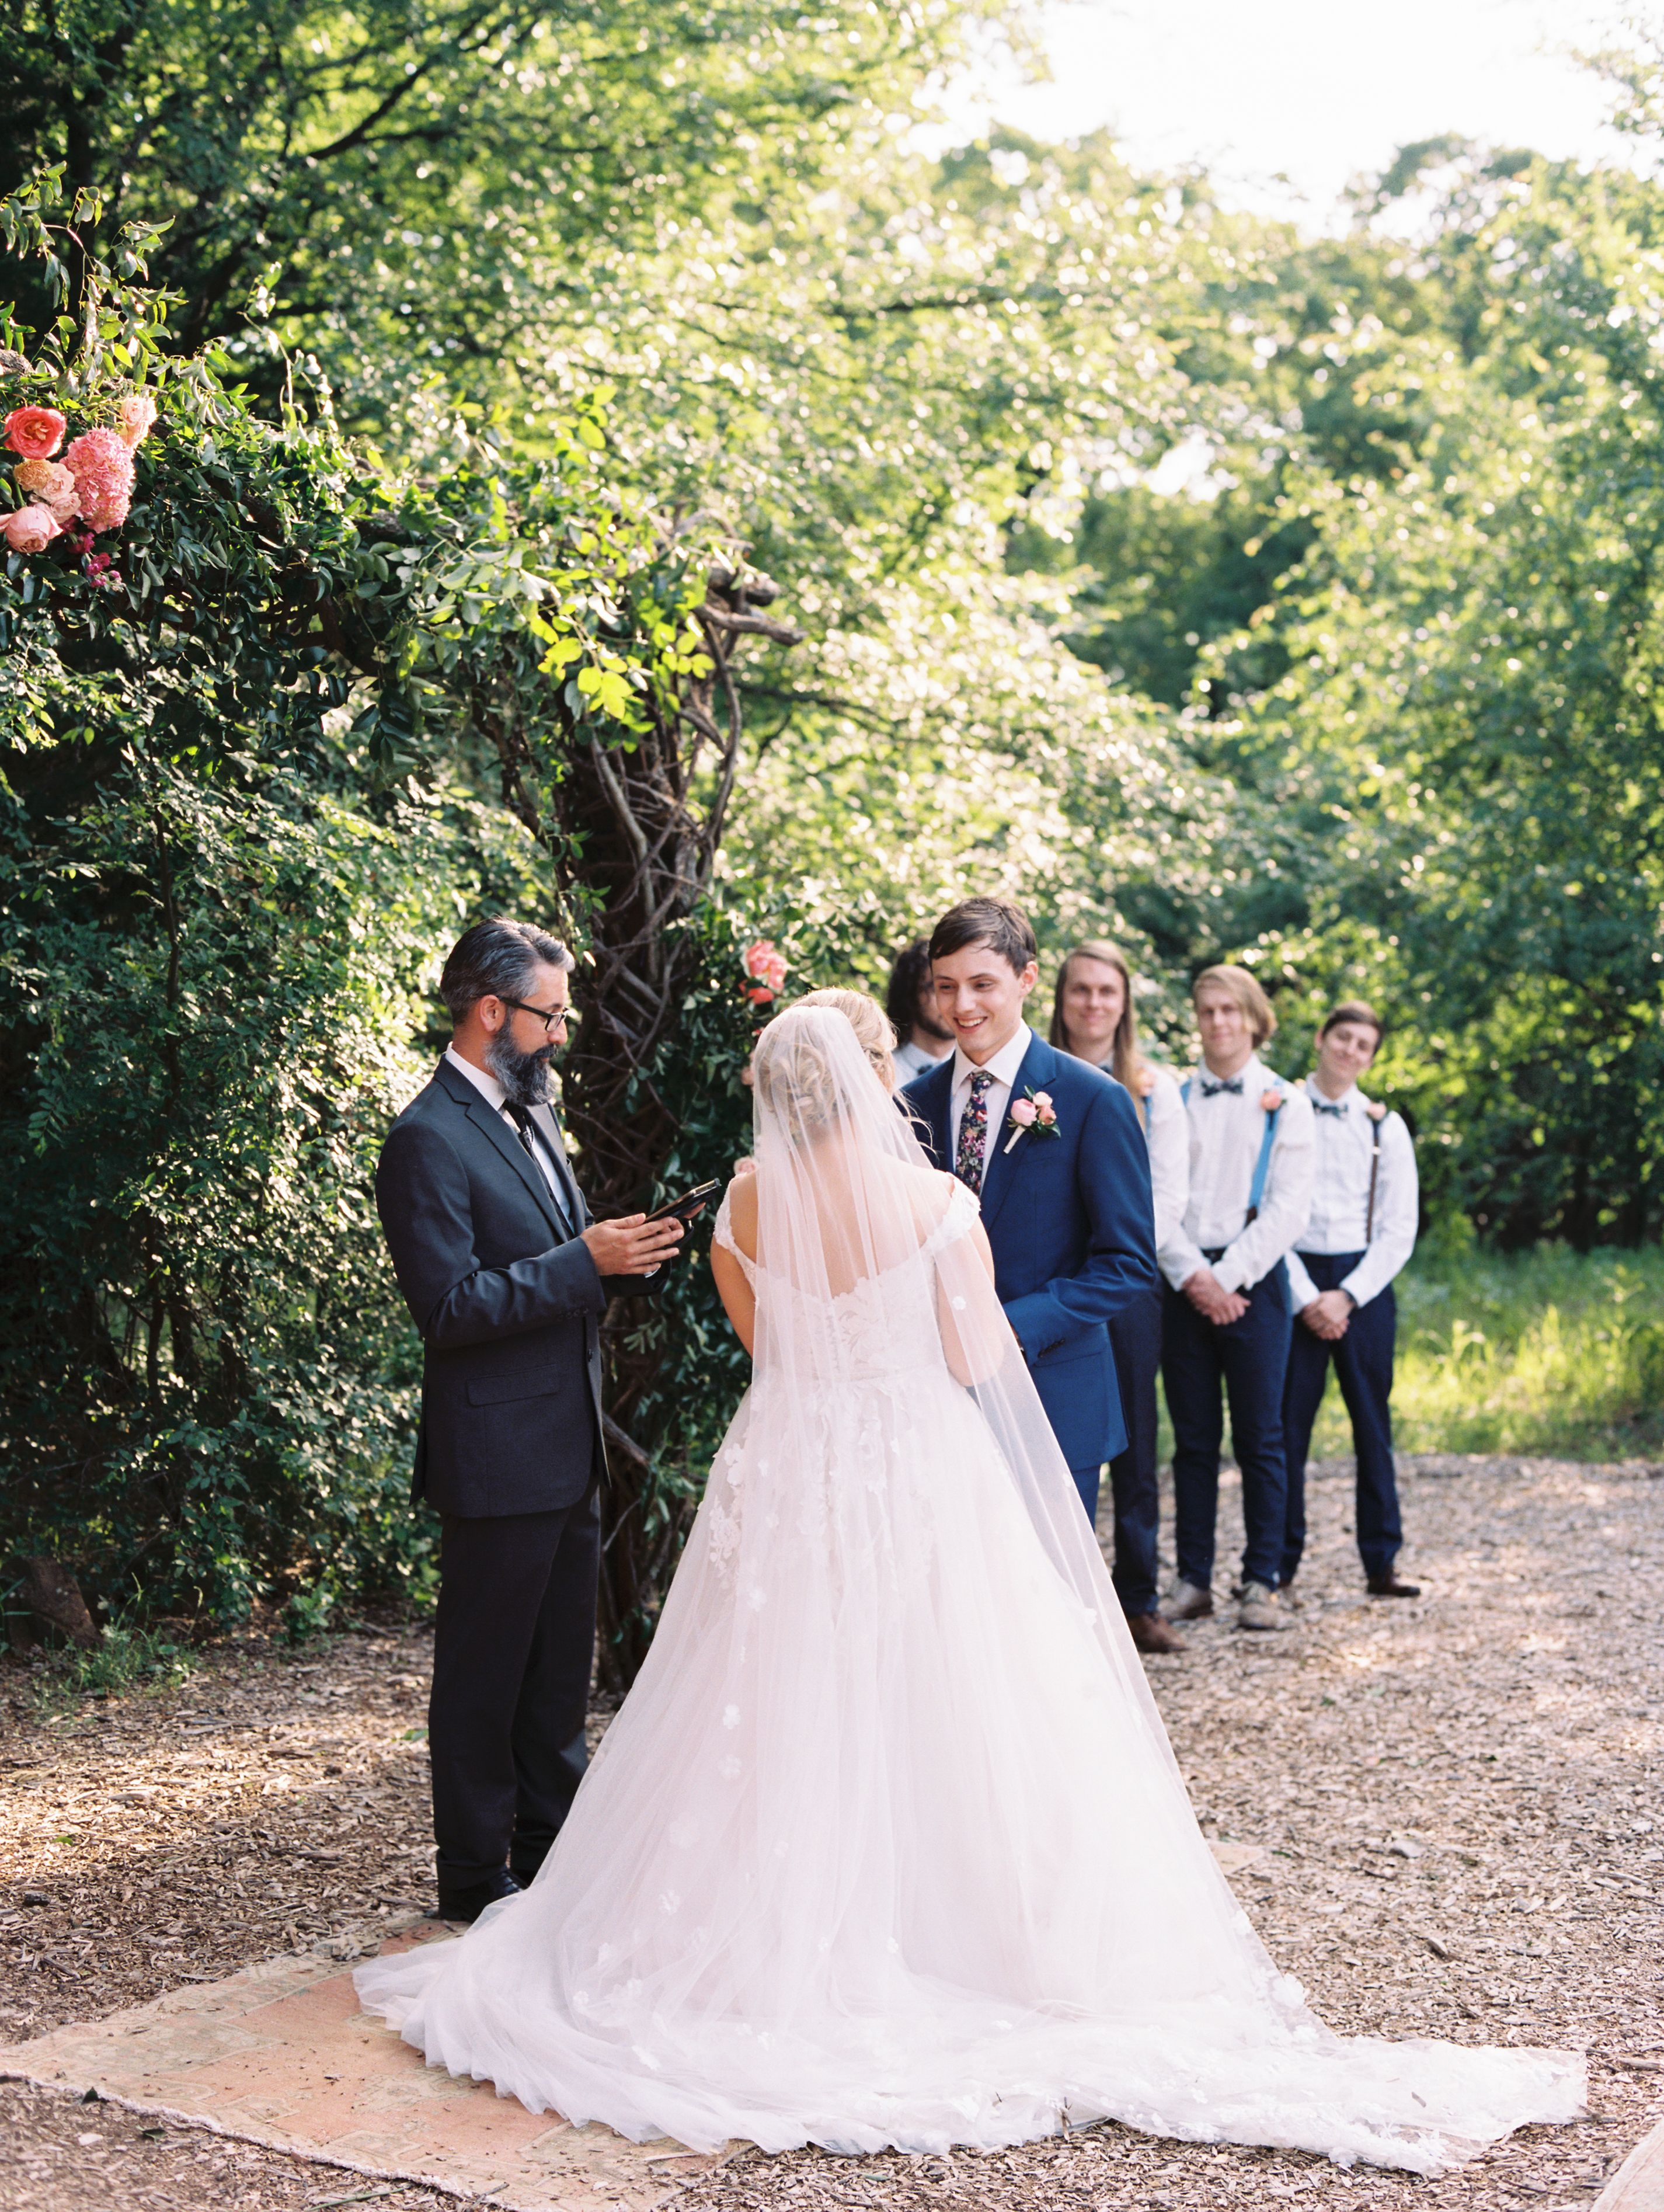 April wedding at The Grove in Aubrey, Texas! Photography